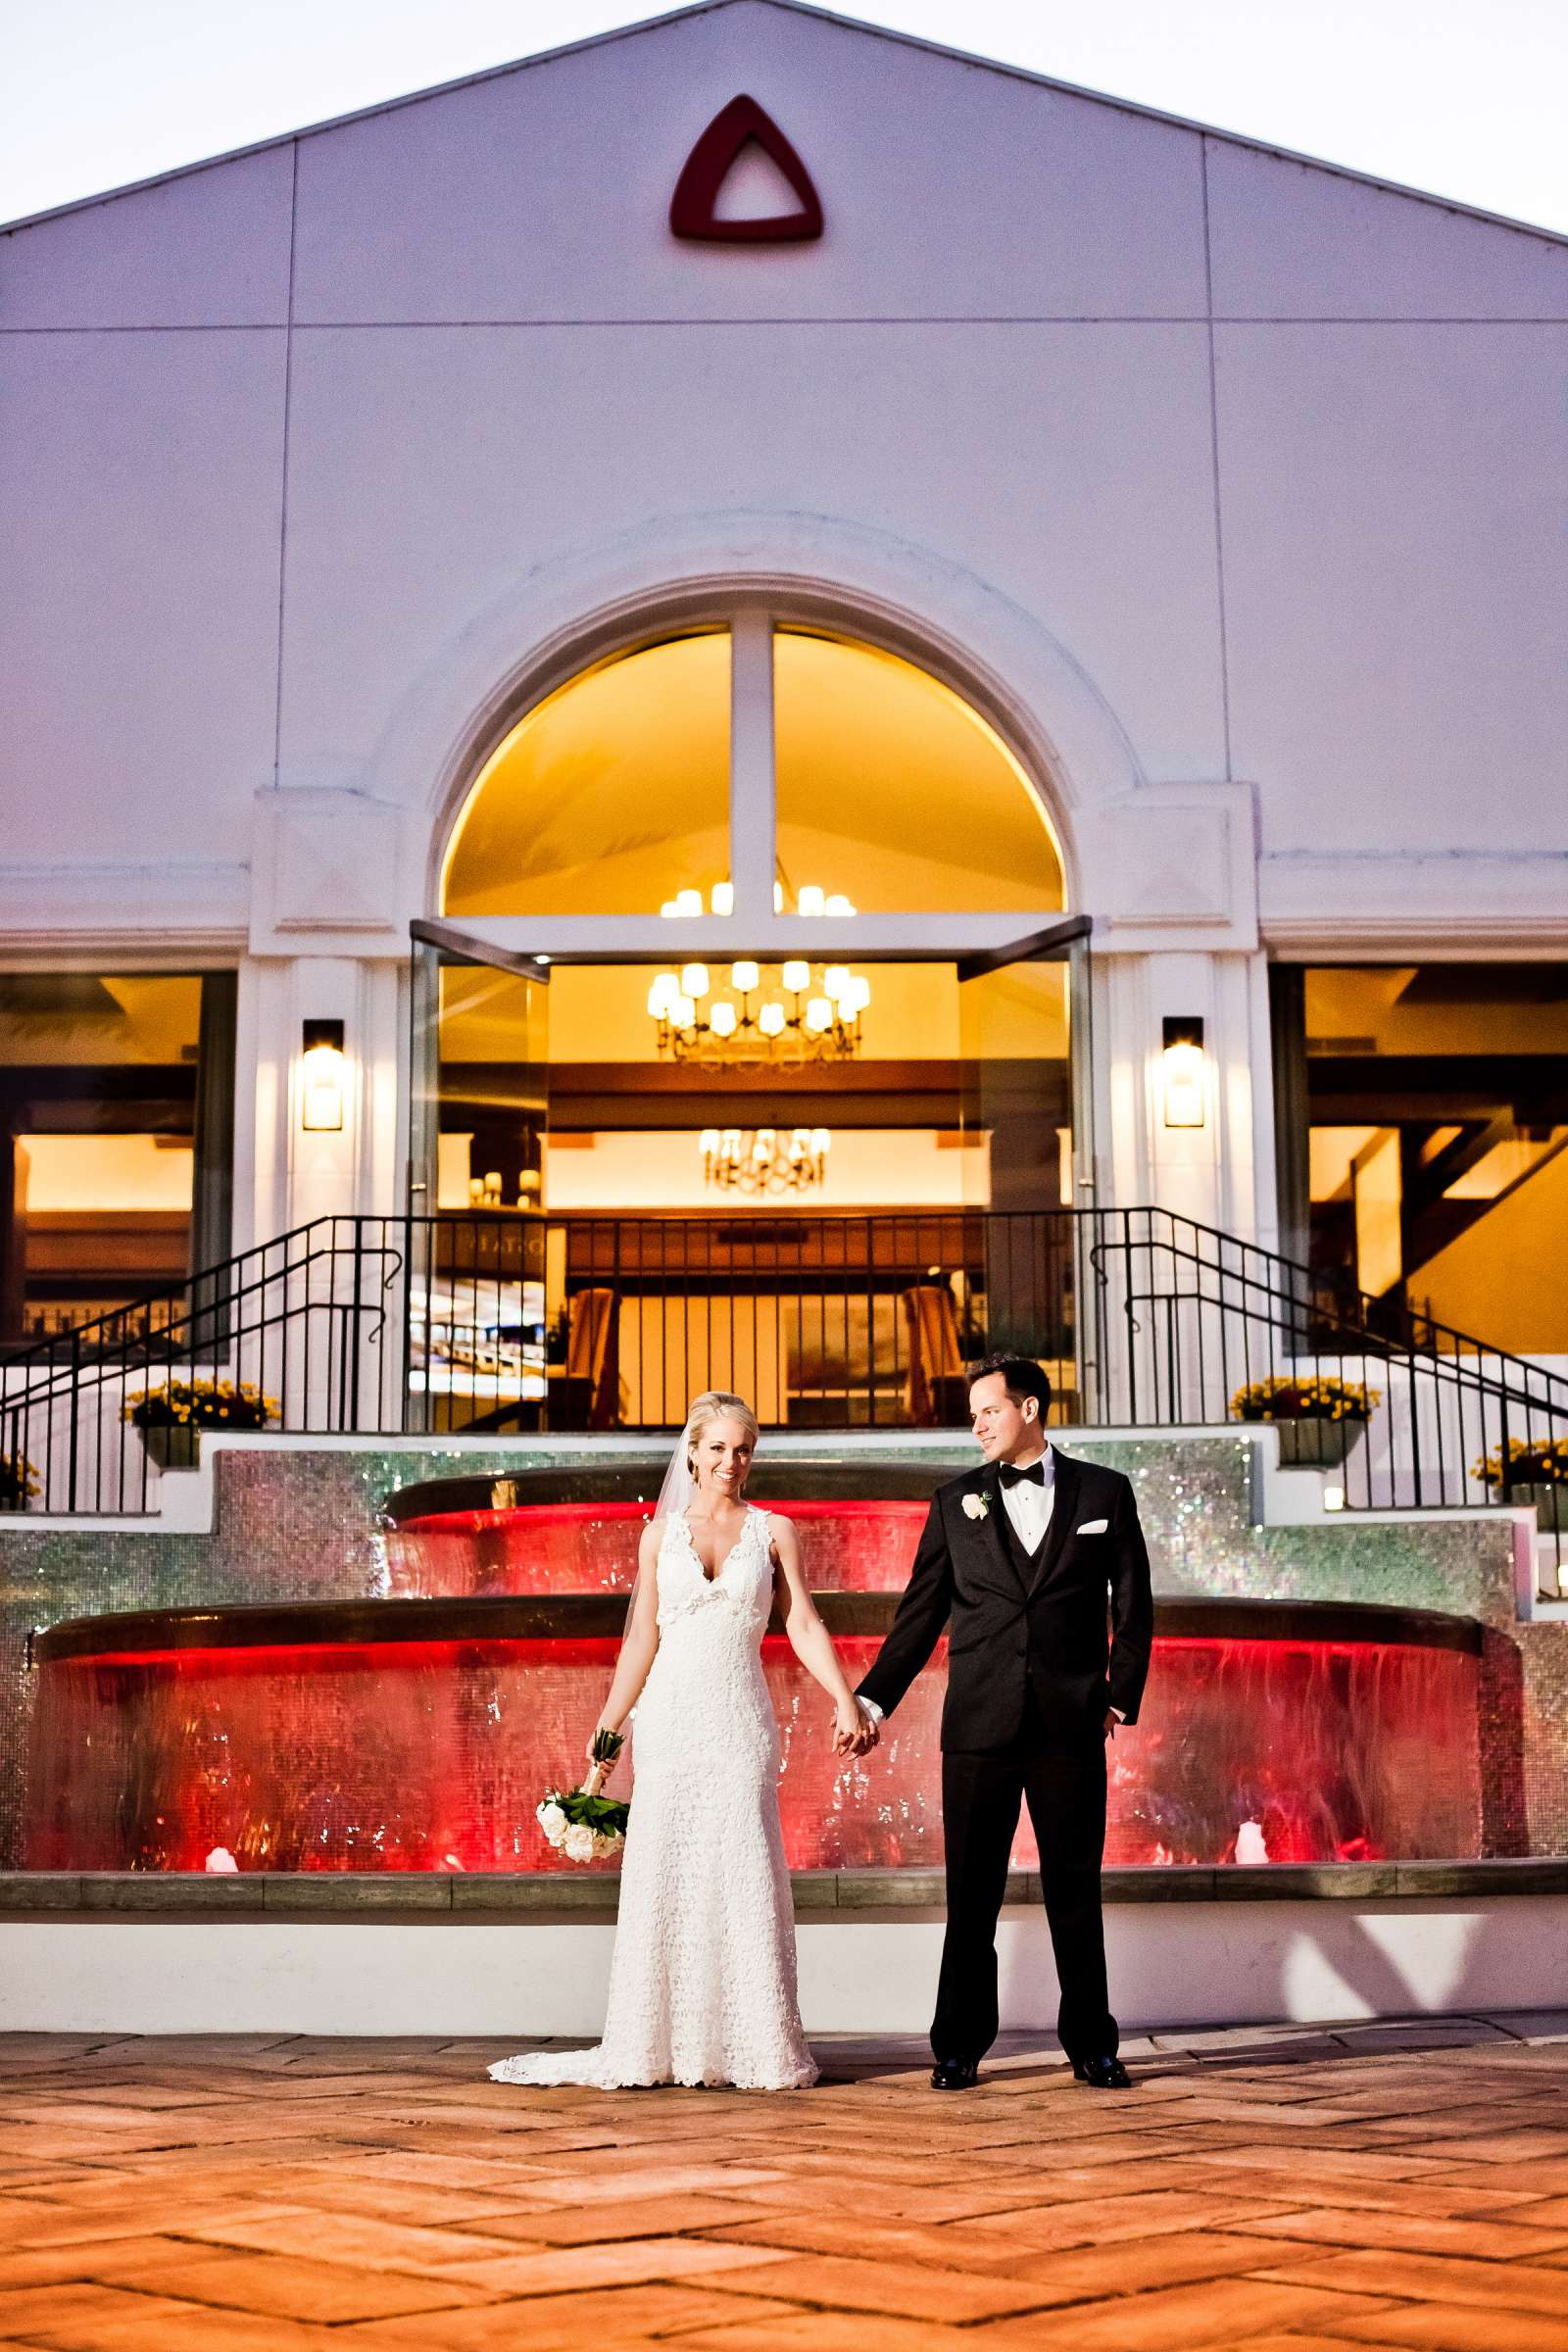 Omni La Costa Resort & Spa Wedding coordinated by At Your Side Planning, Normandy and Alex Wedding Photo #326618 by True Photography